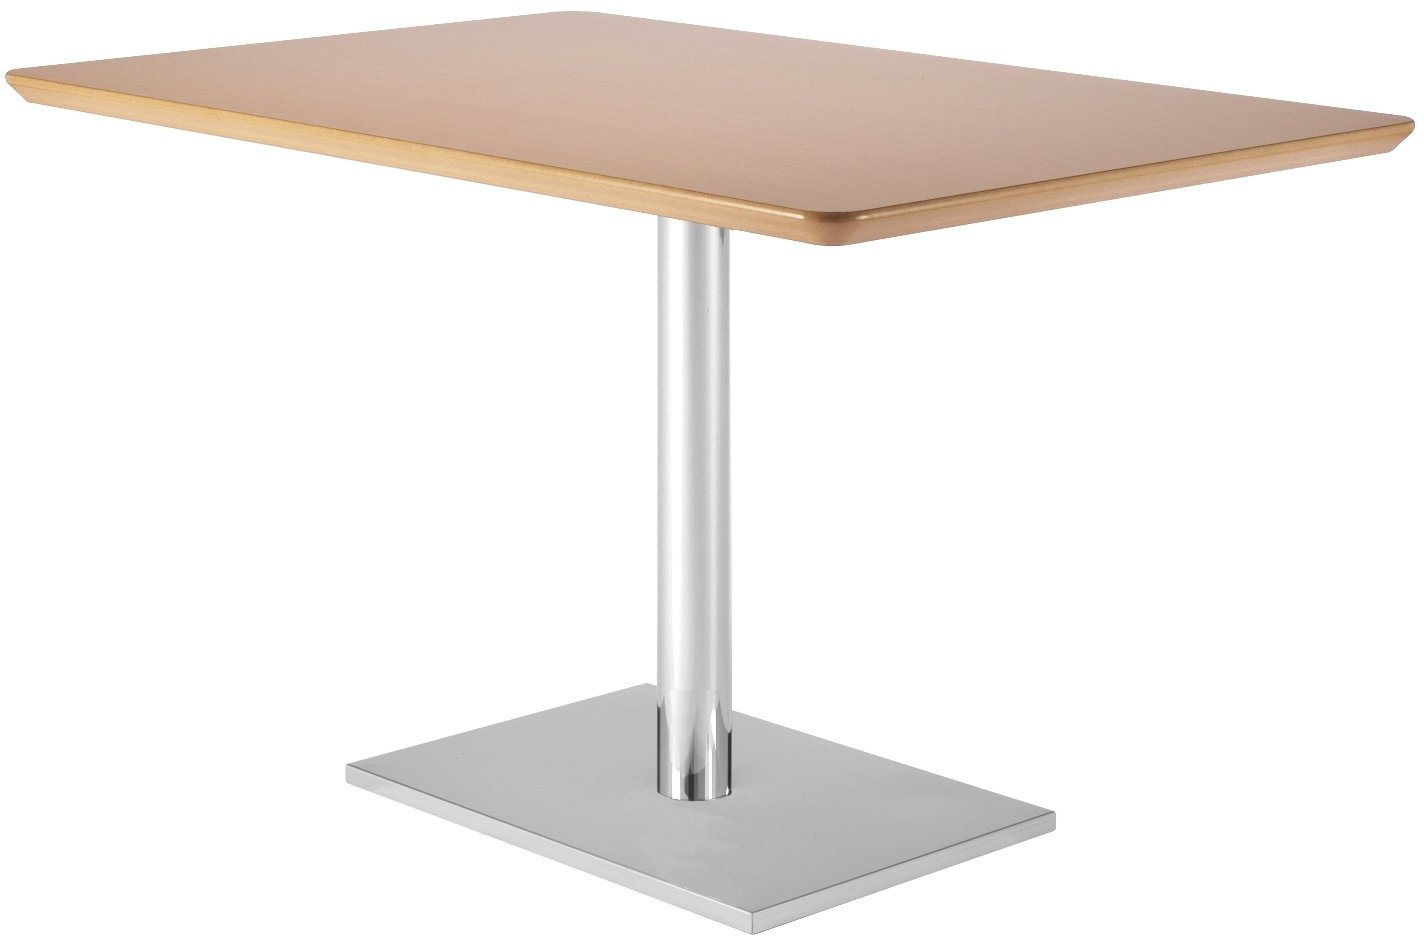 Frövi Flat Rectangular Dining Table With MFC Finish